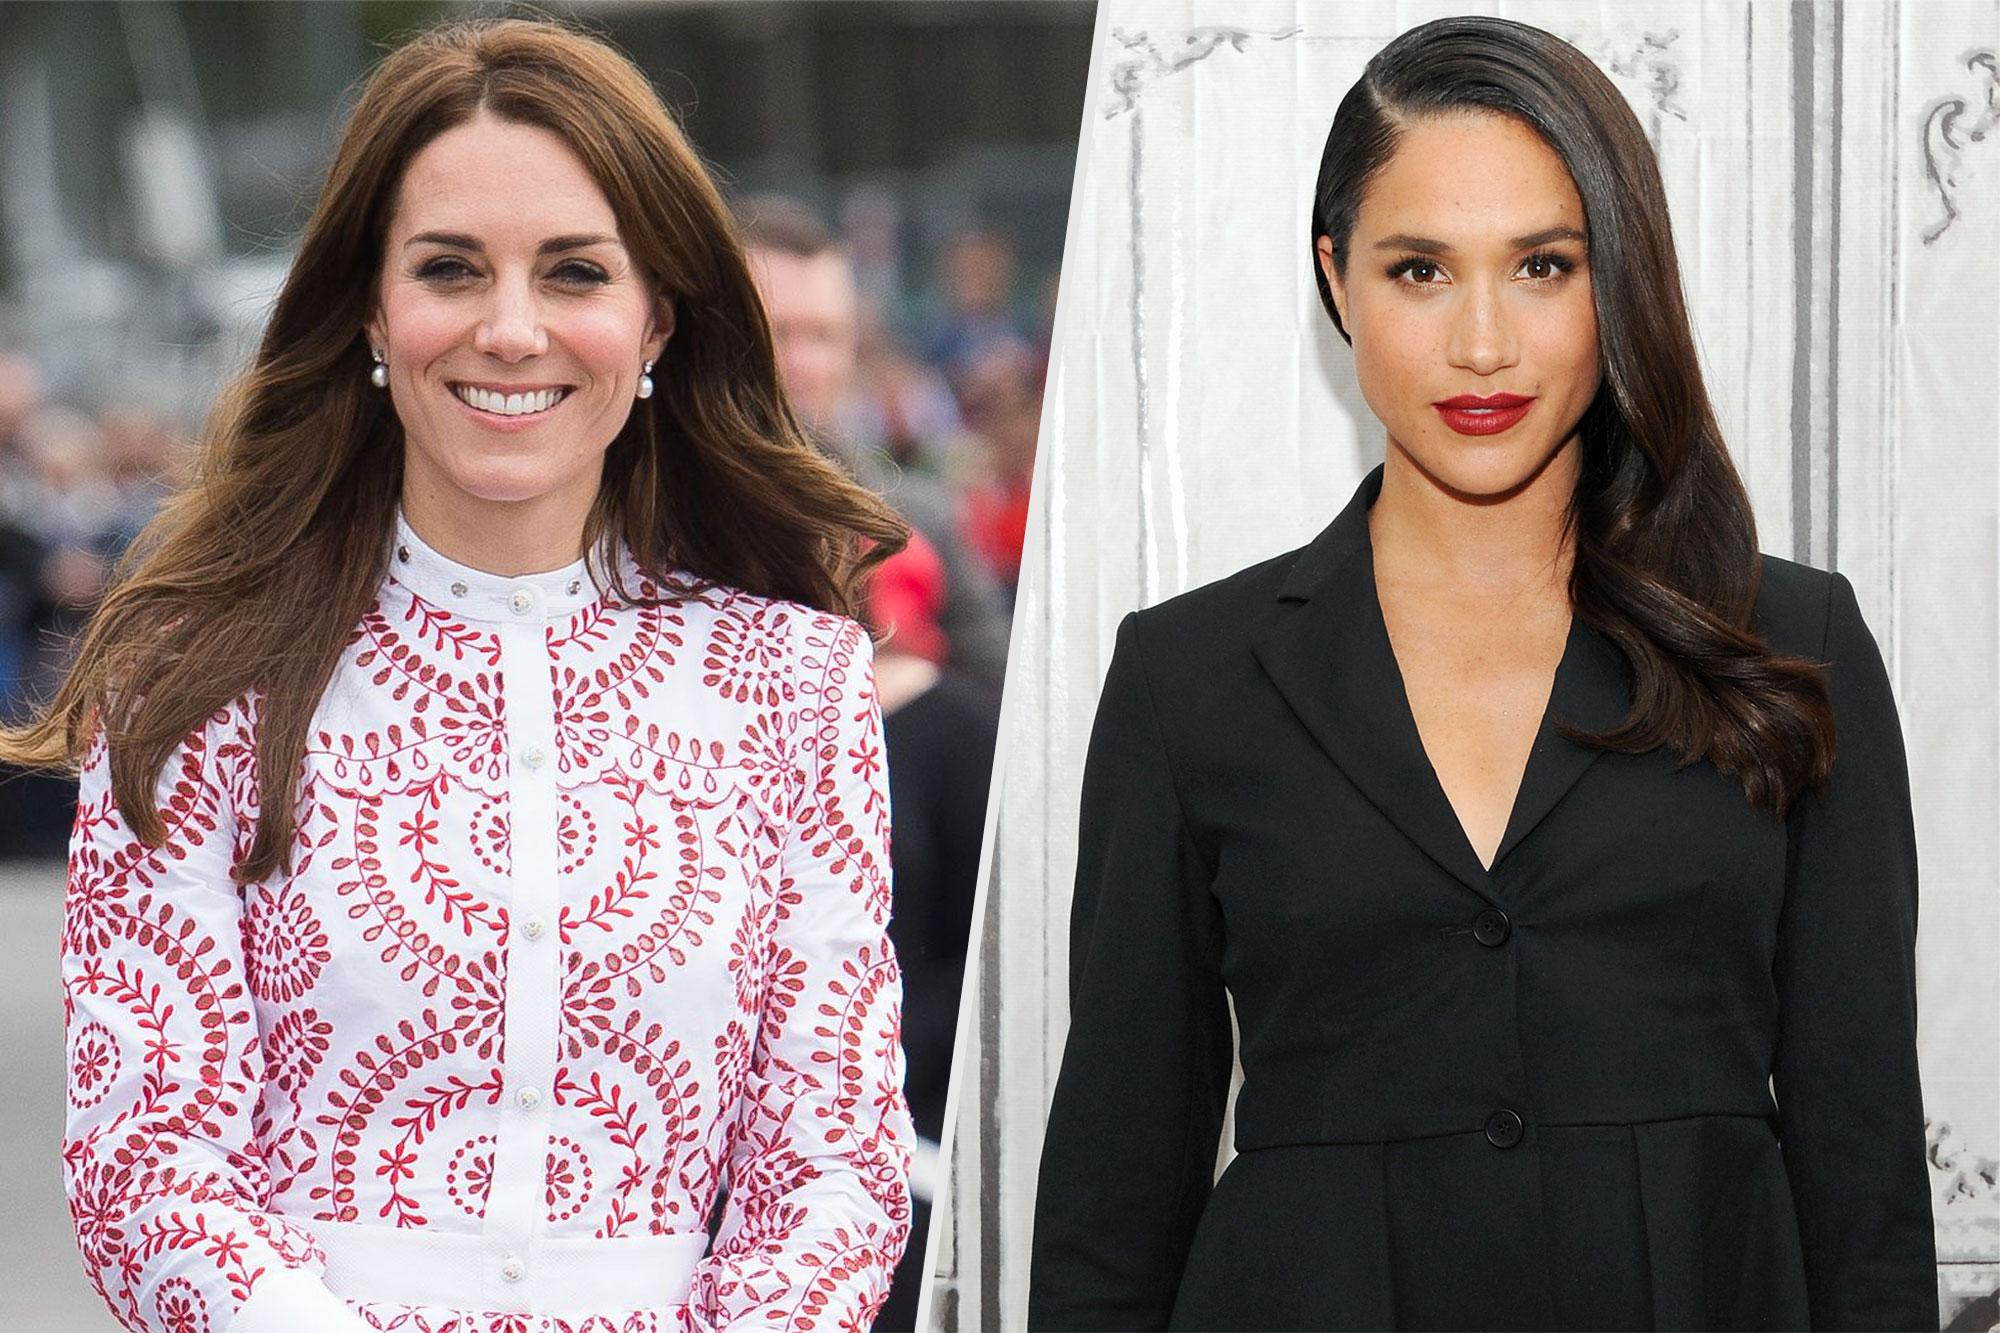 Prince Harry Introduces Meghan Markle to Princess Kate and Charlotte: Report